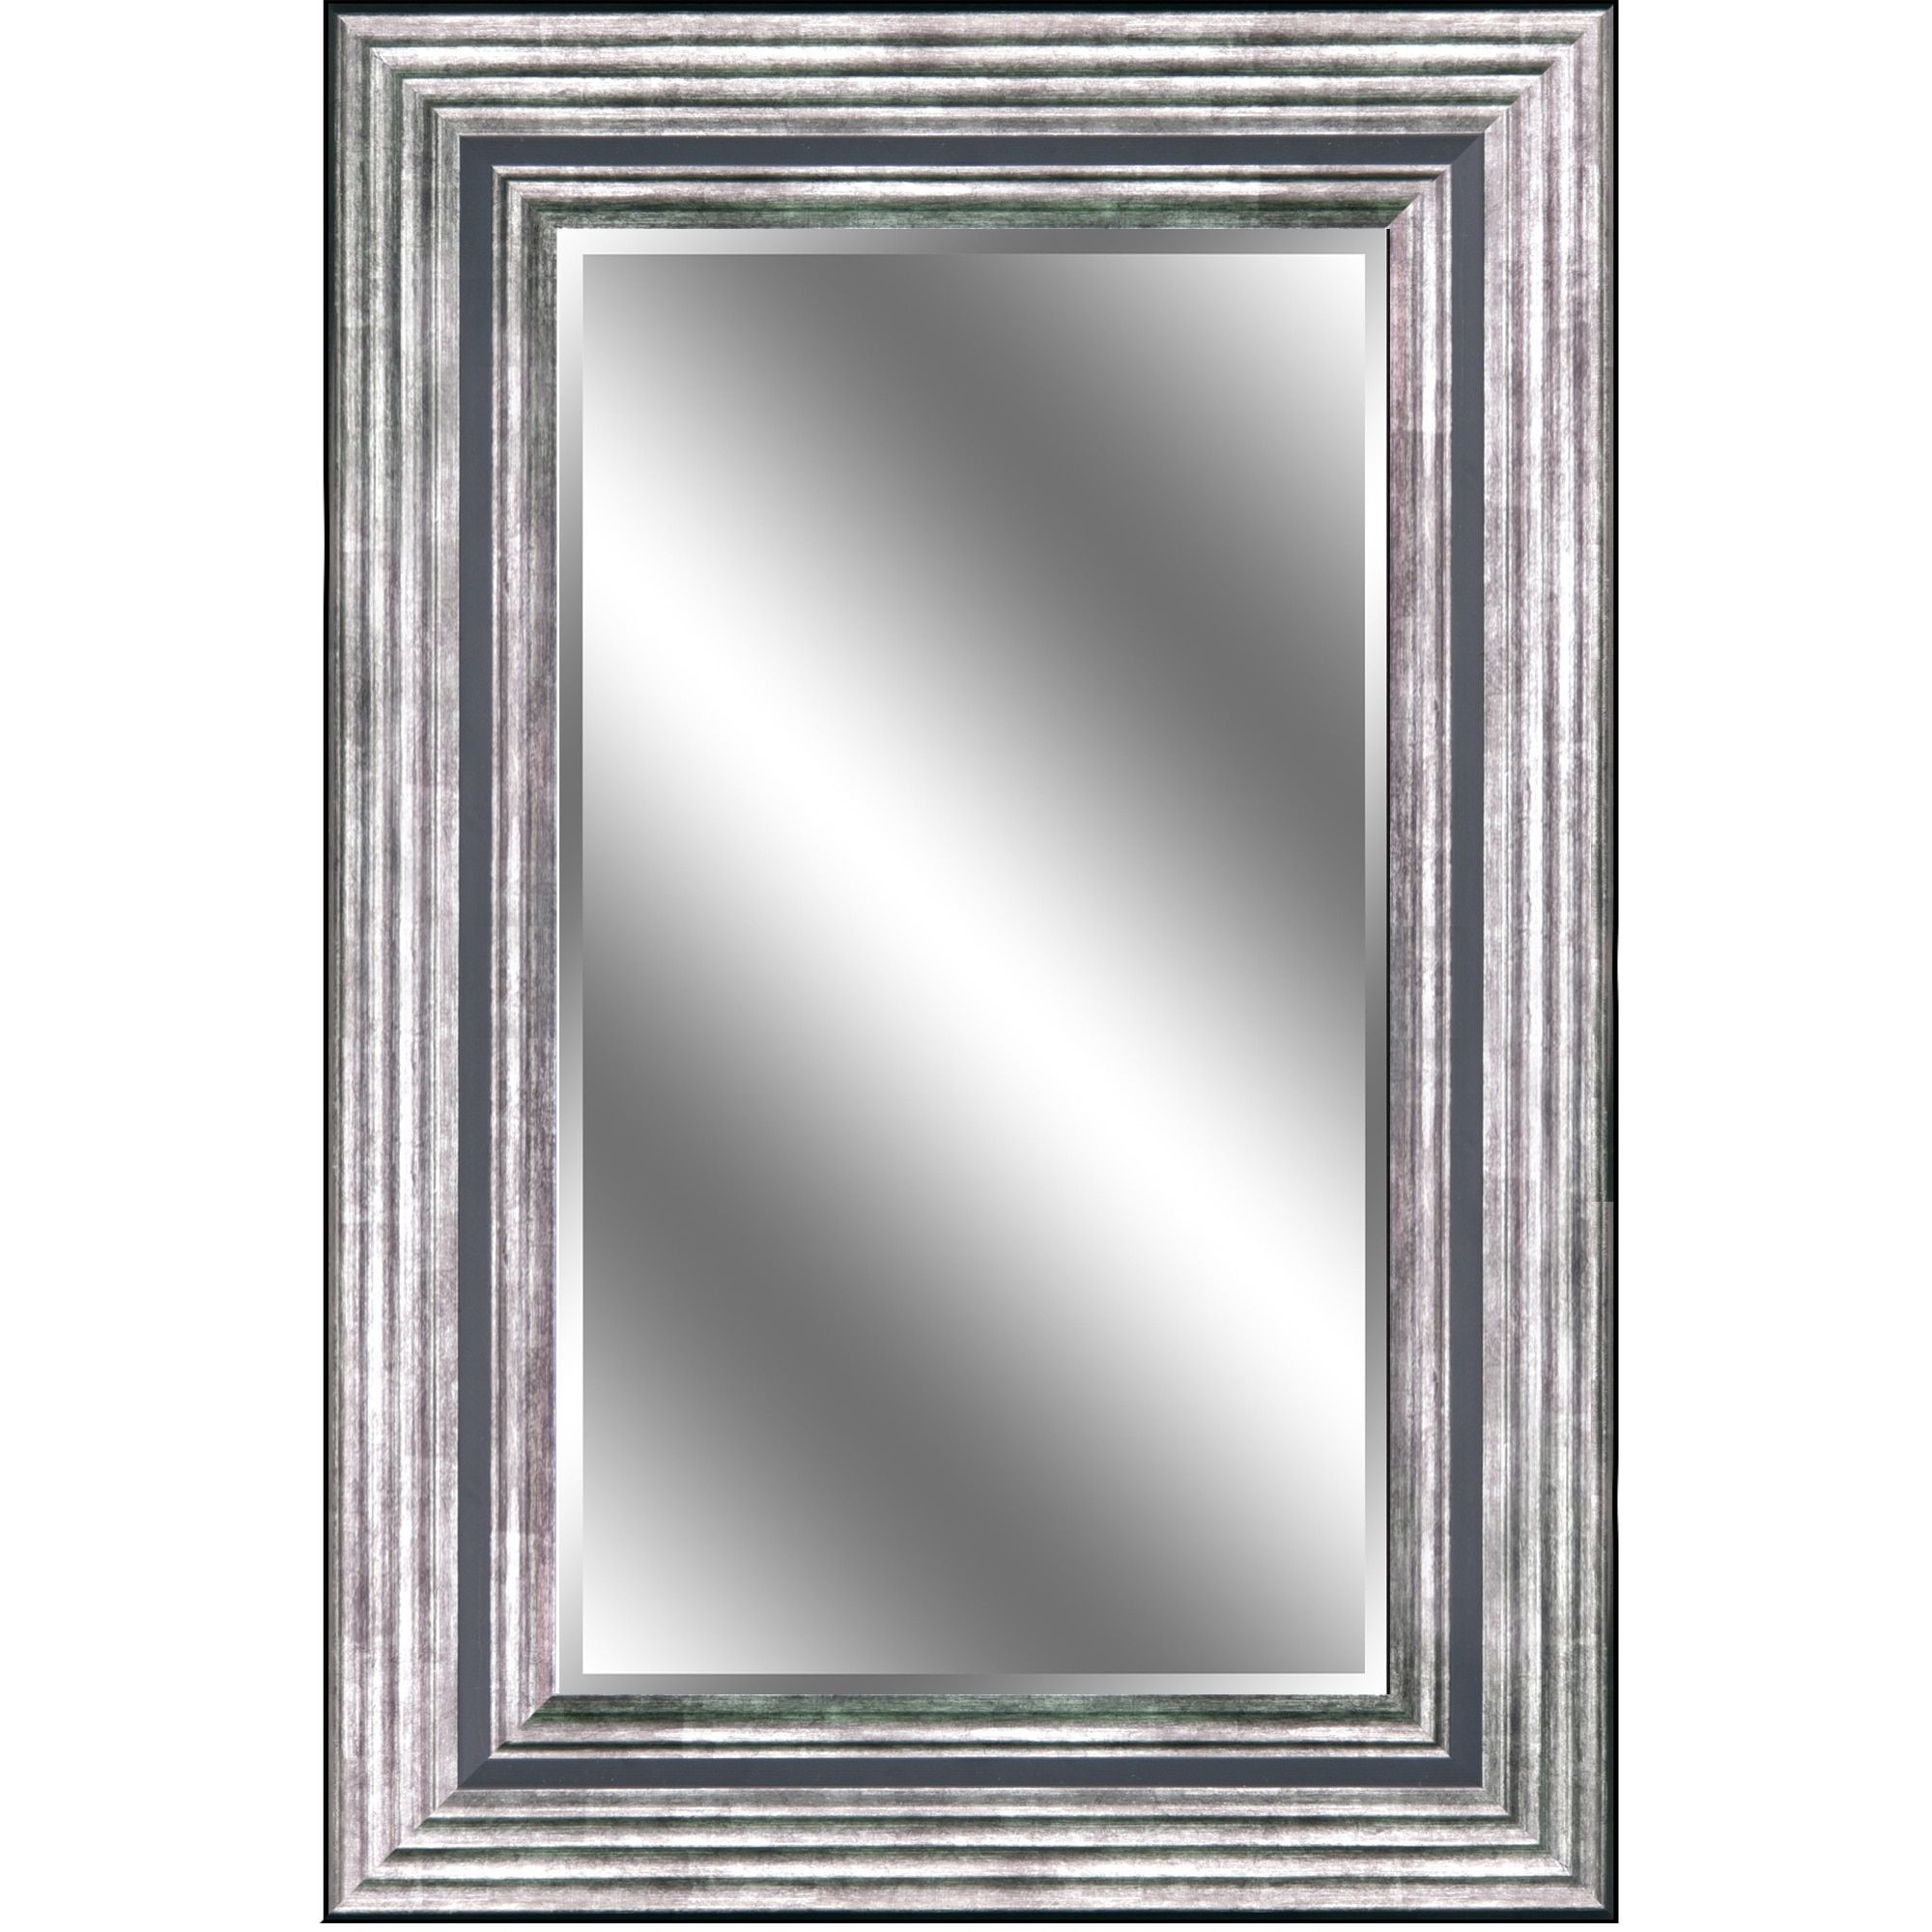 Y-Decor \'reflection\' 24 x 36 x 1-inch Bevel Mirror with 5-inch ...